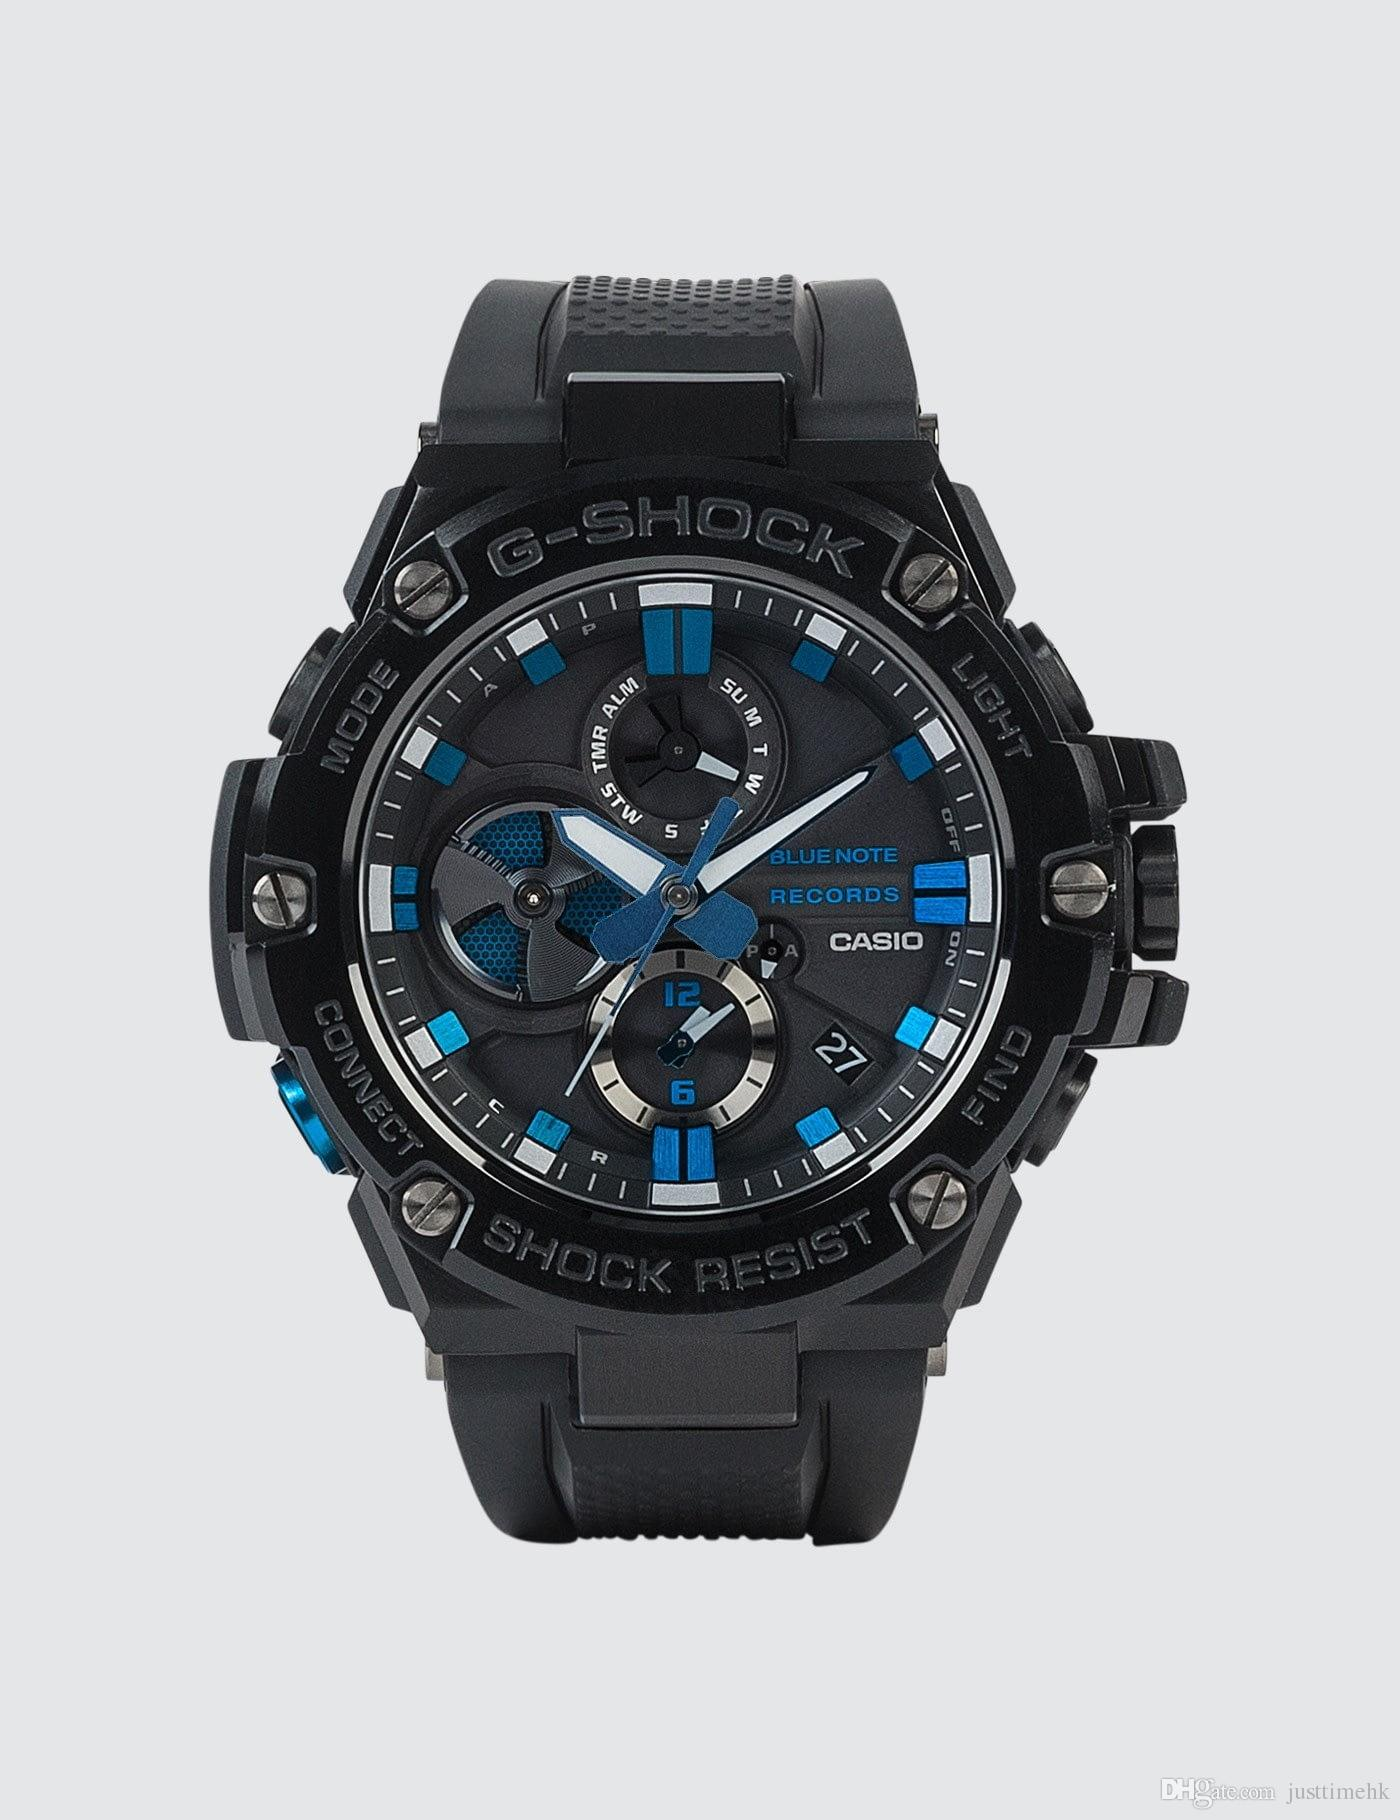 Casio G Shock G Steel Blue Note Records Limited Gst B100bnr 1a Tough